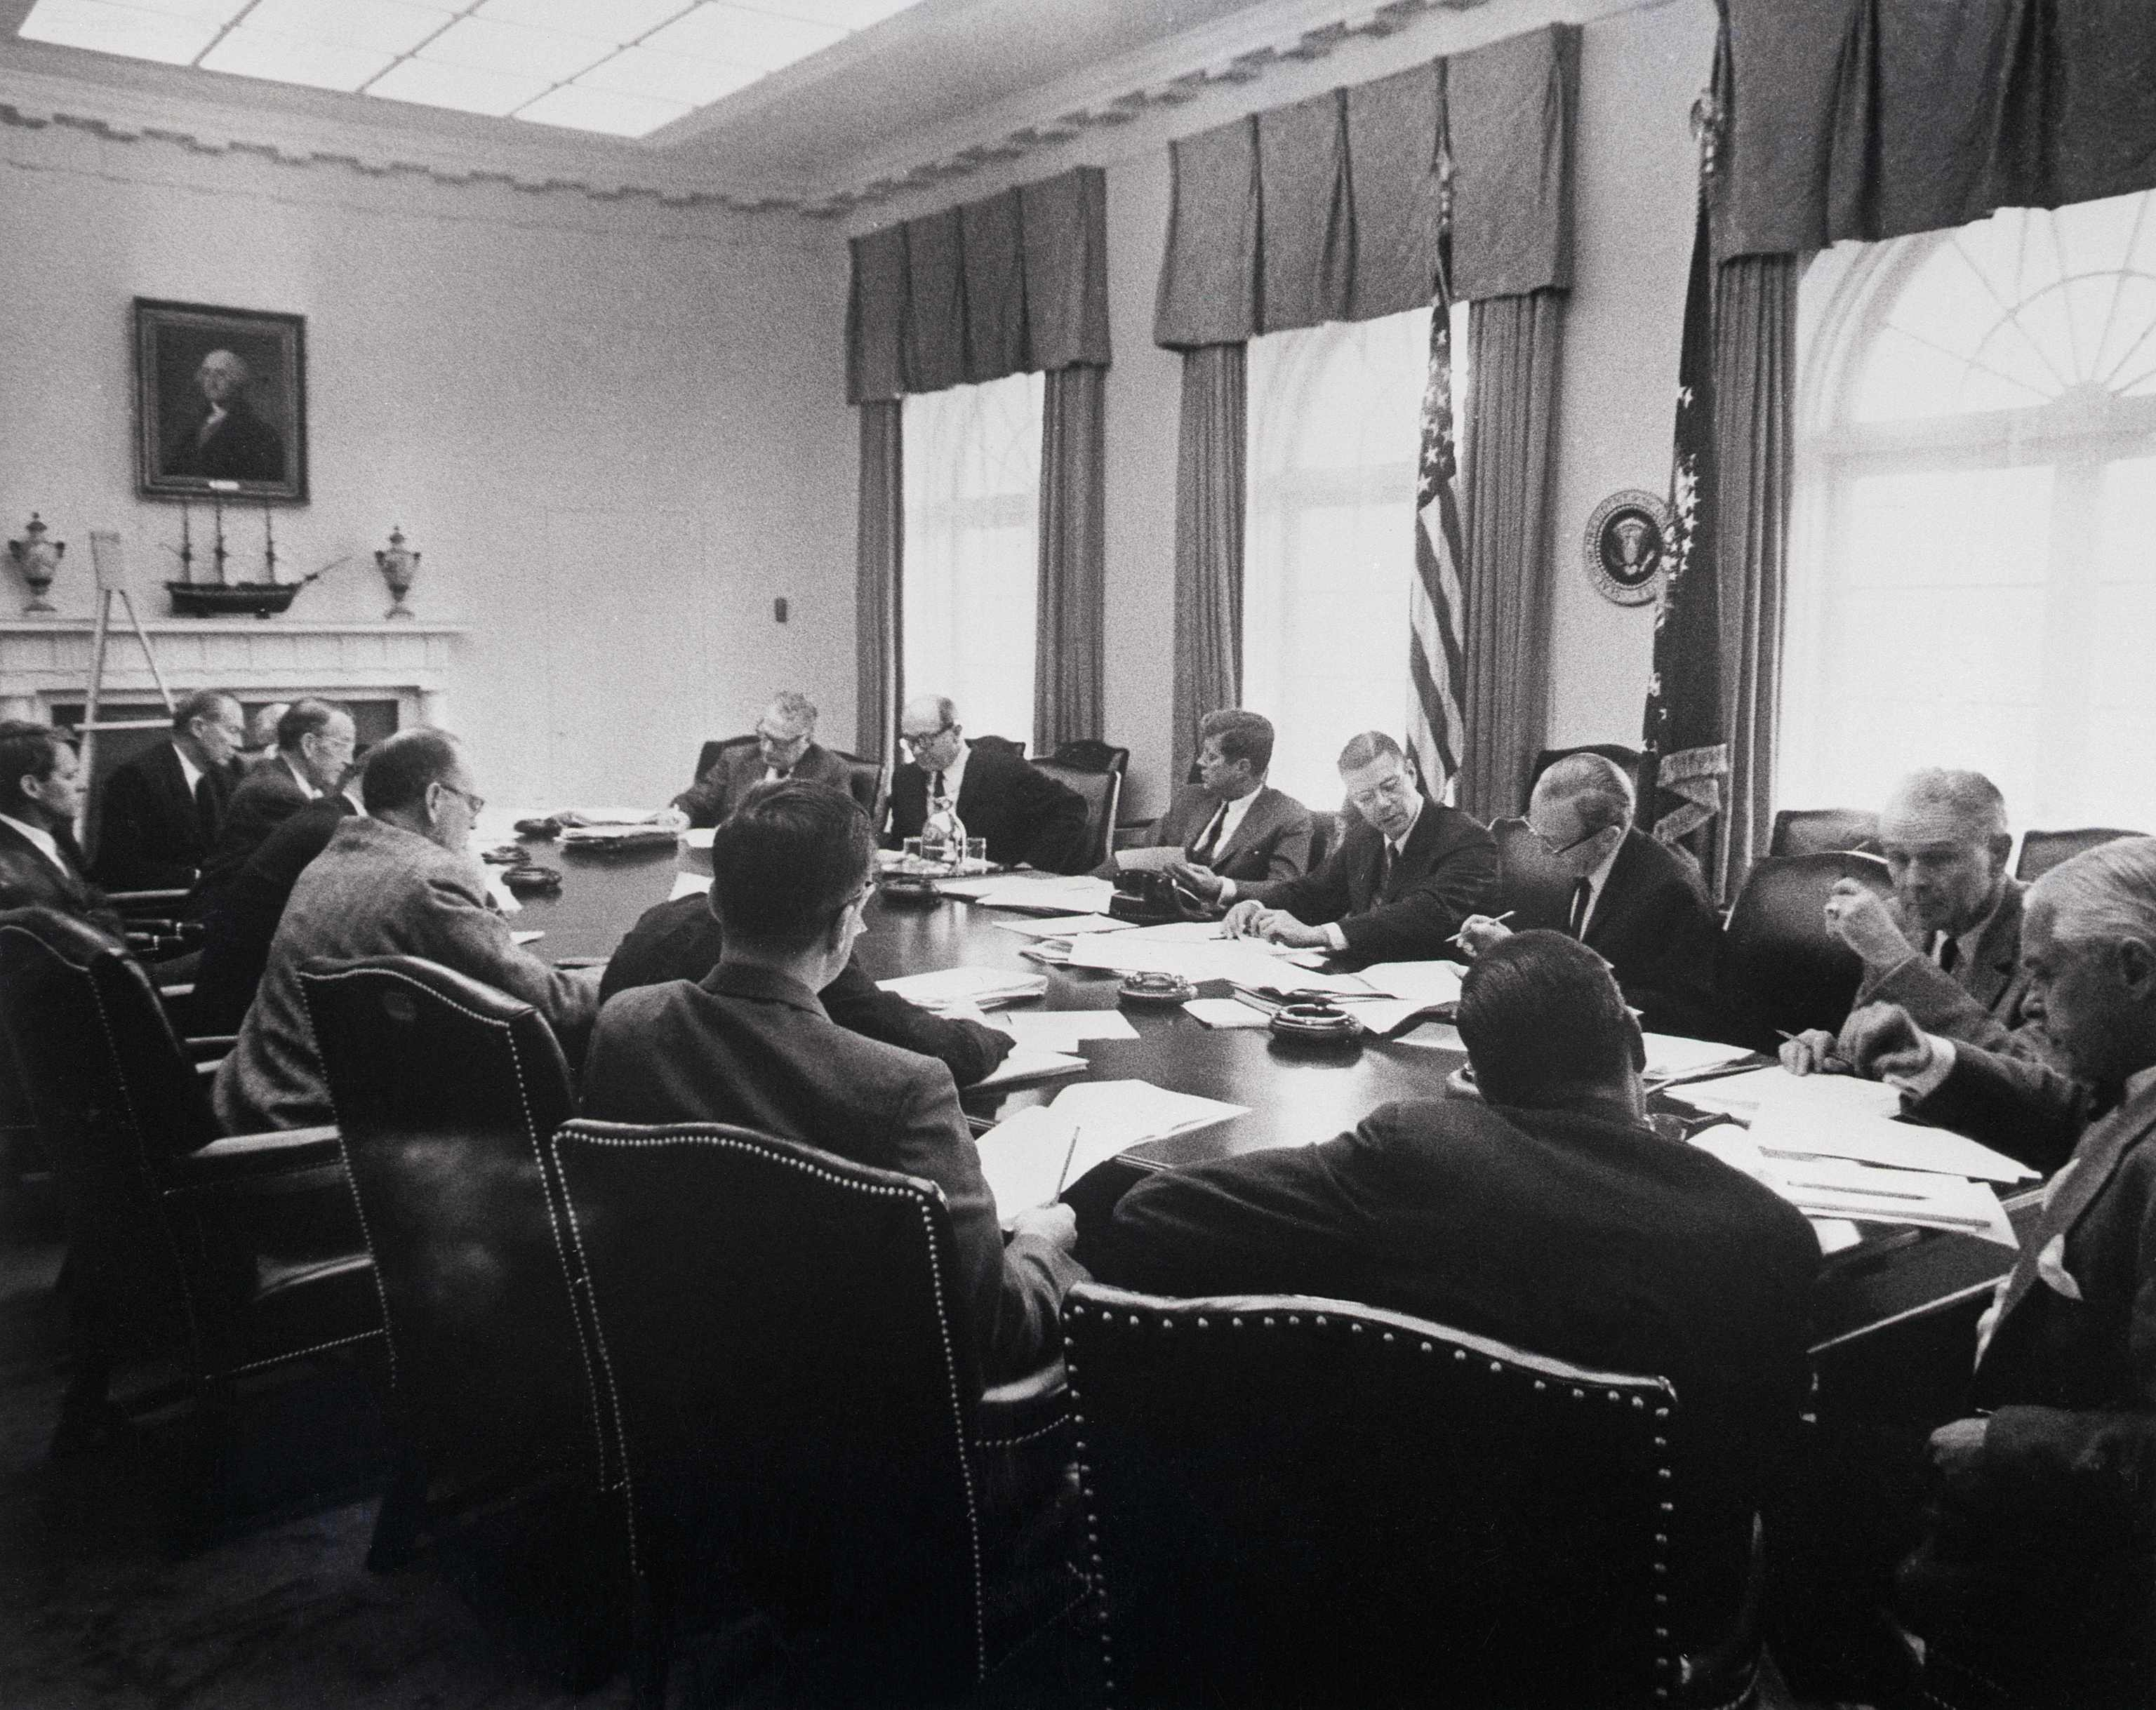 President Kennedy Meeting With Cabinet Officers